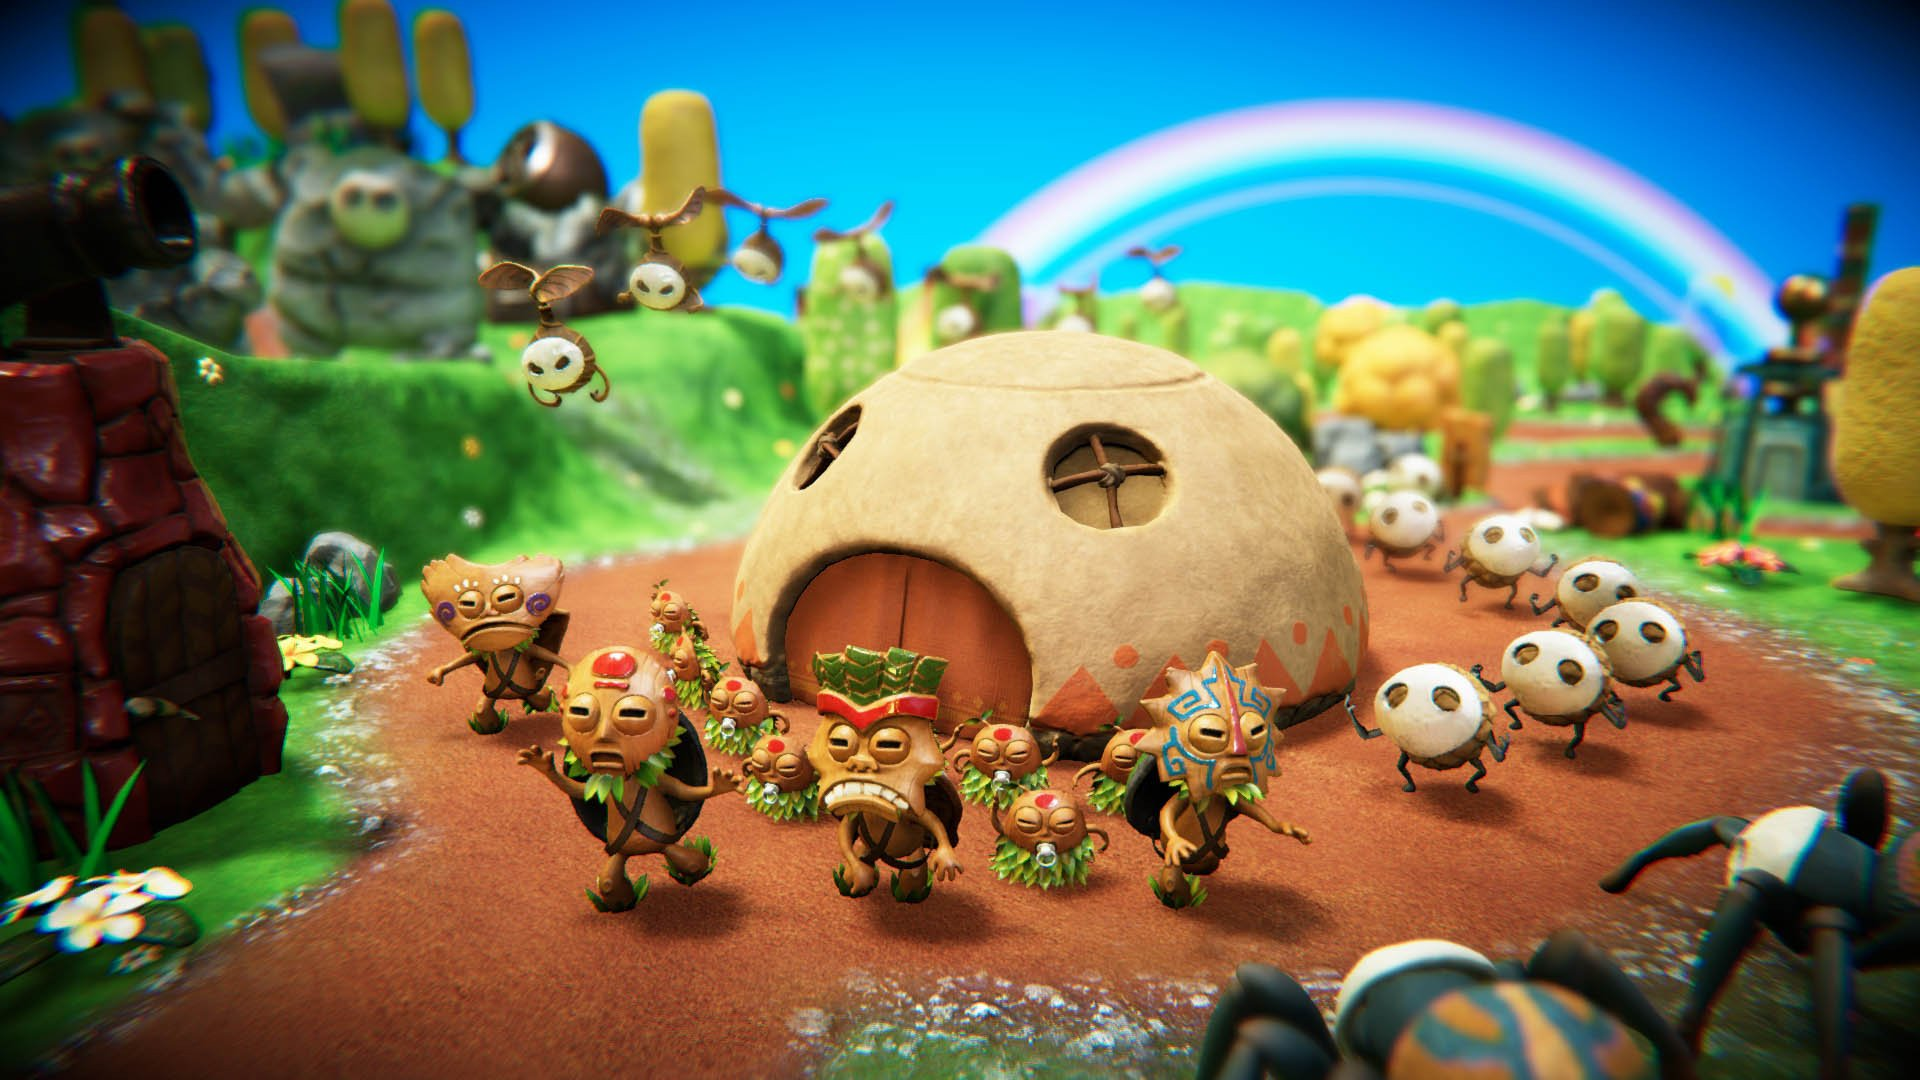 PixelJunk Monsters 2 has a short but sweet demo on PS4 and PC screenshot